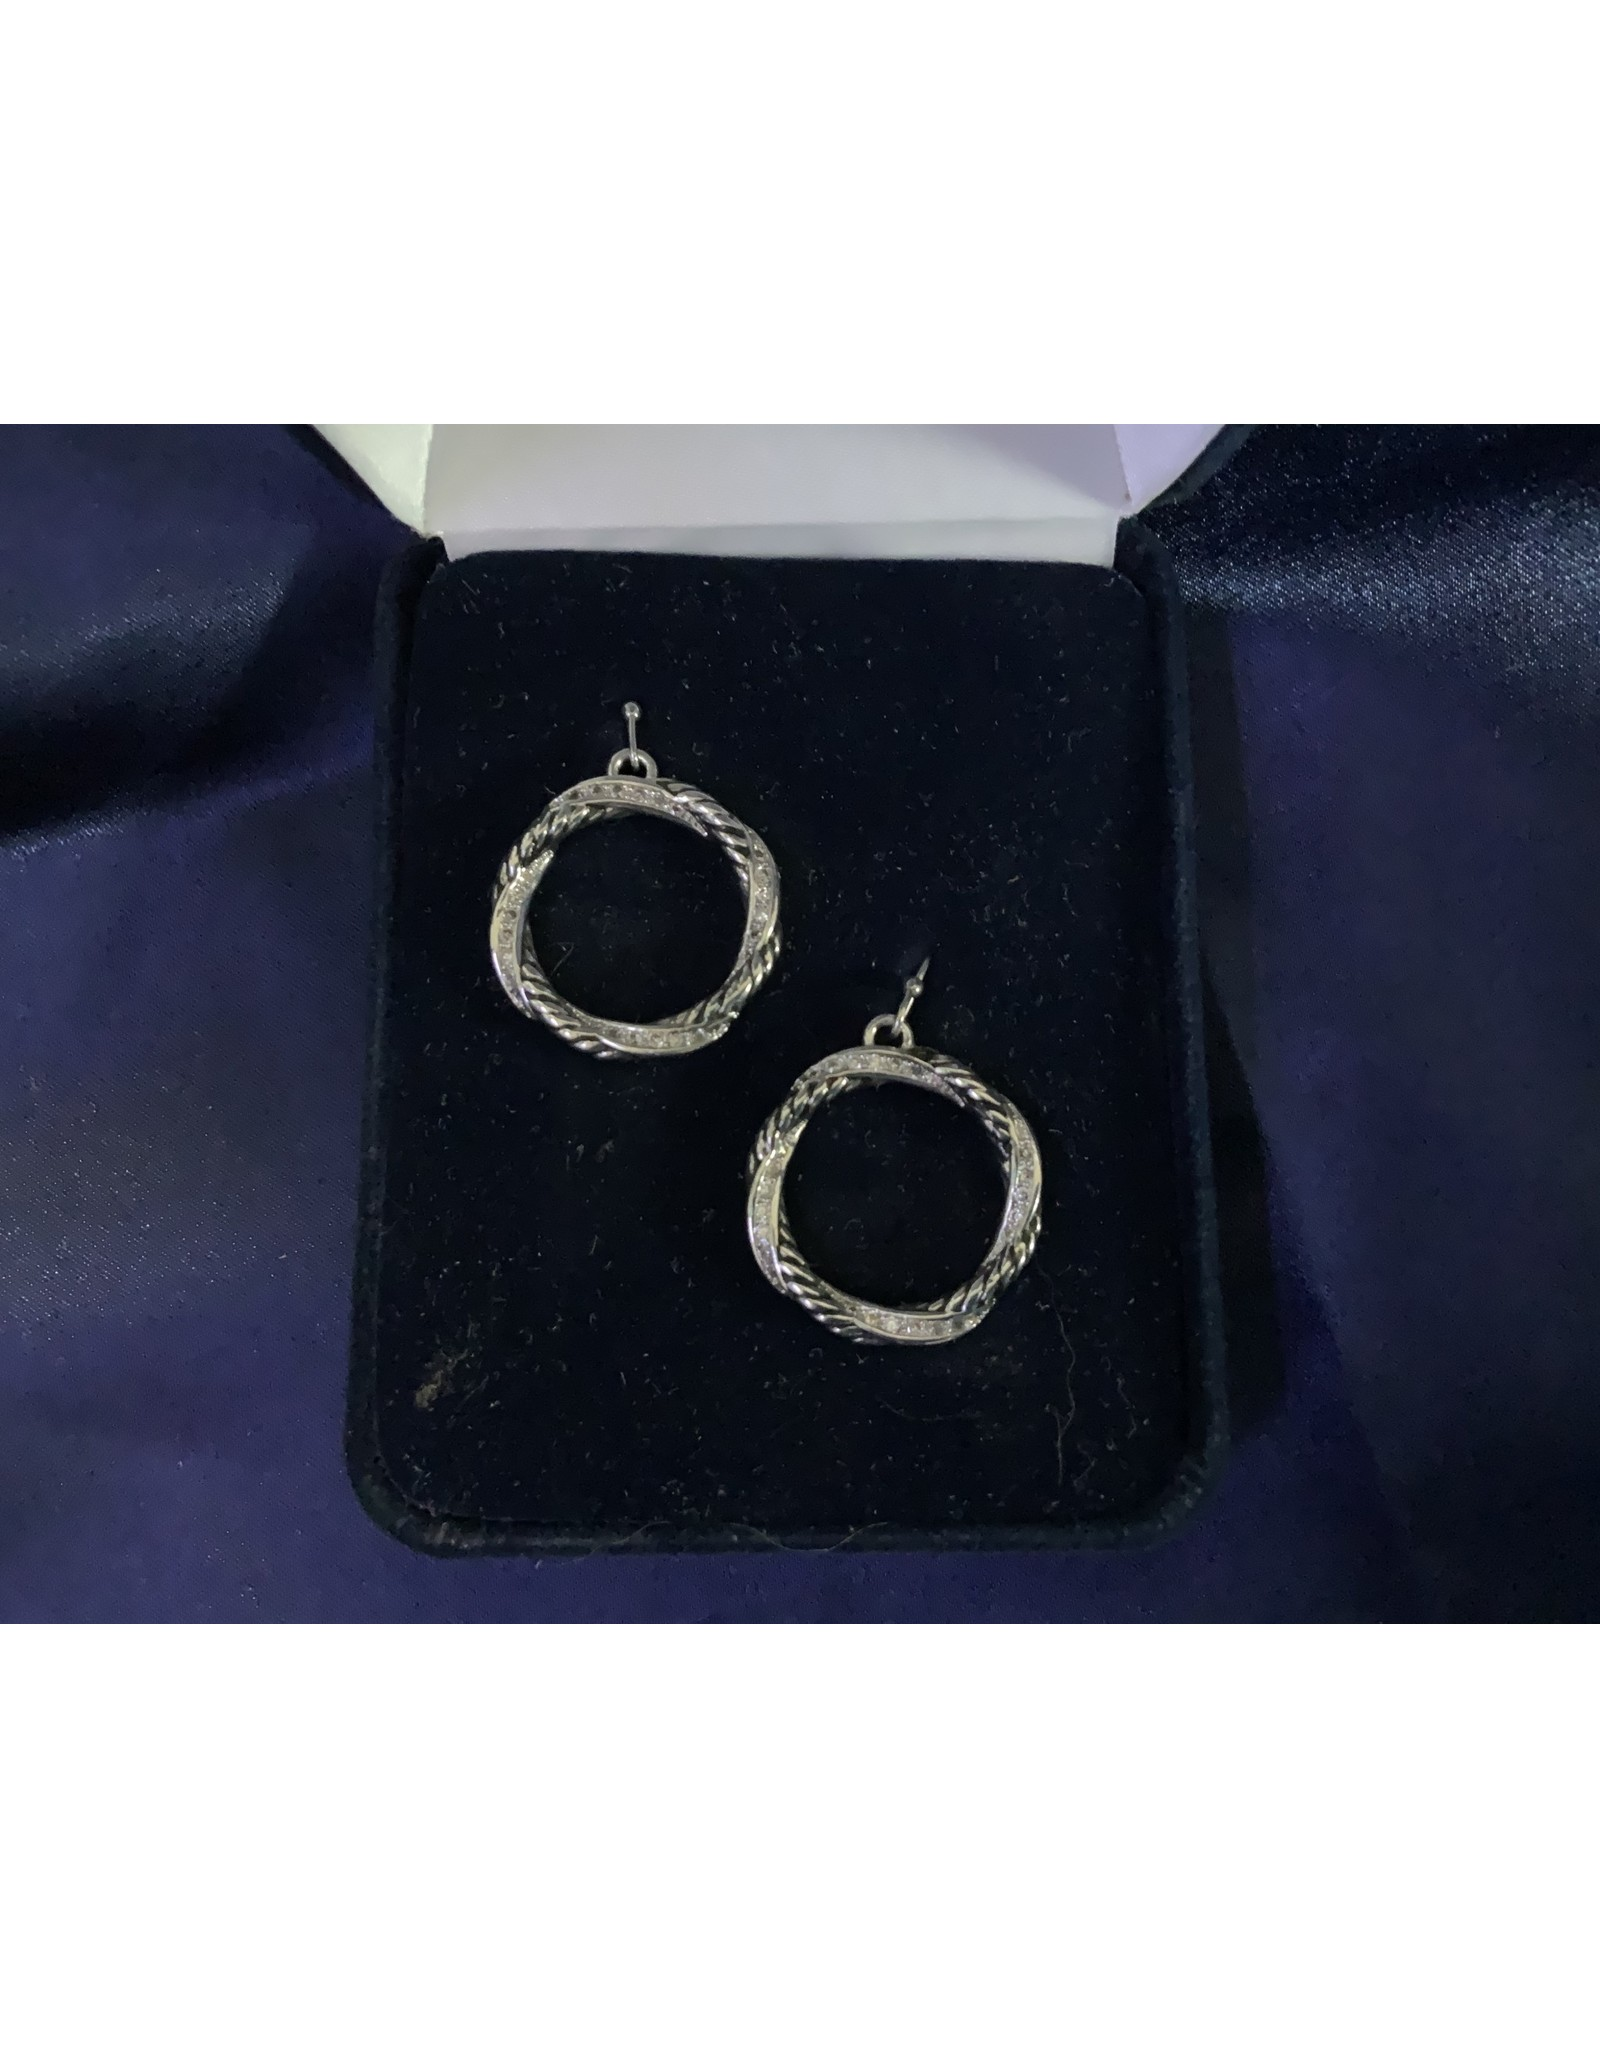 CLEAR CZ AND TWISTED ROPE CIRCLE EARRINGS